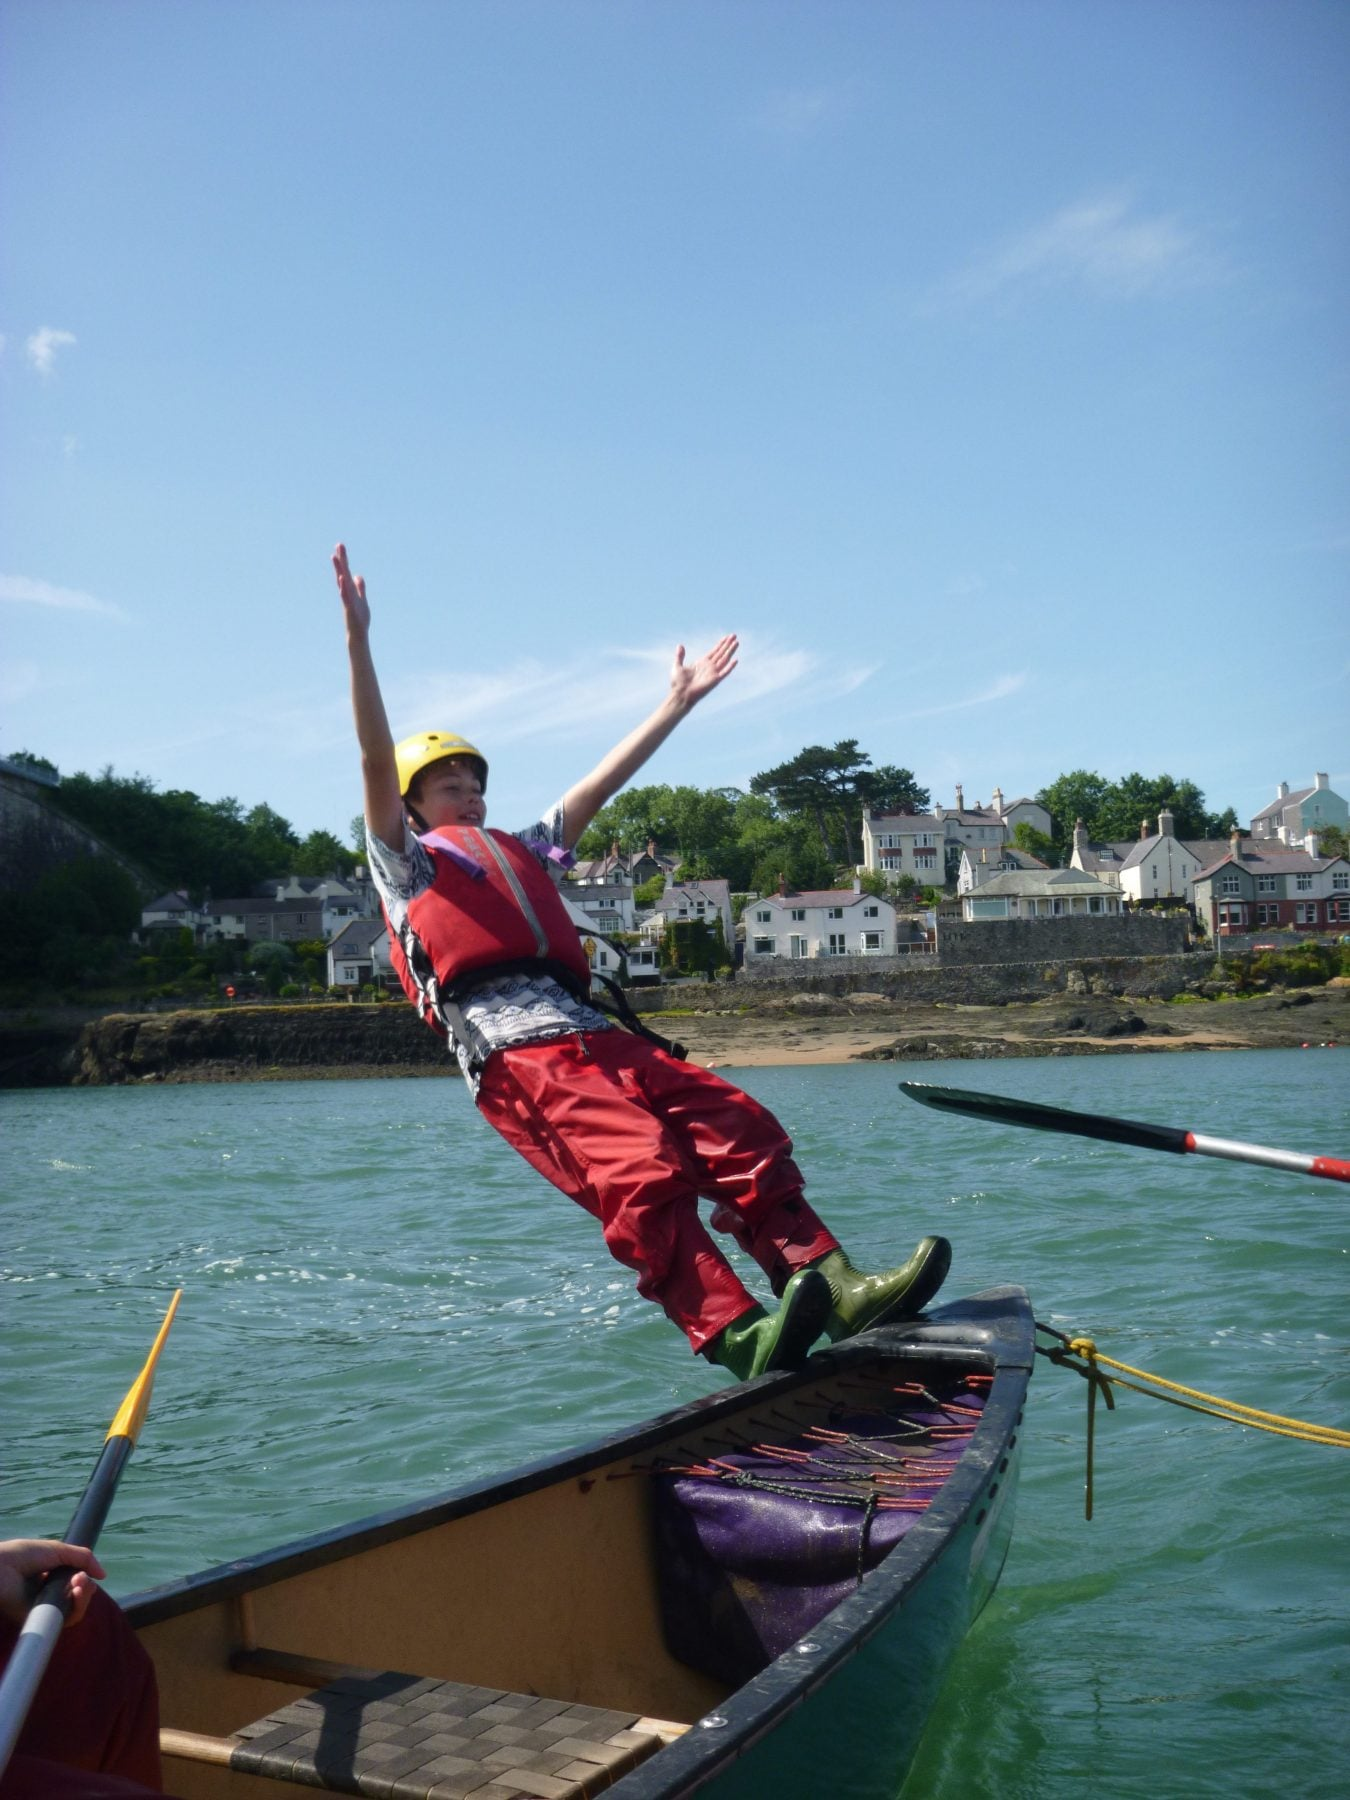 outdoor activities course for youth uk